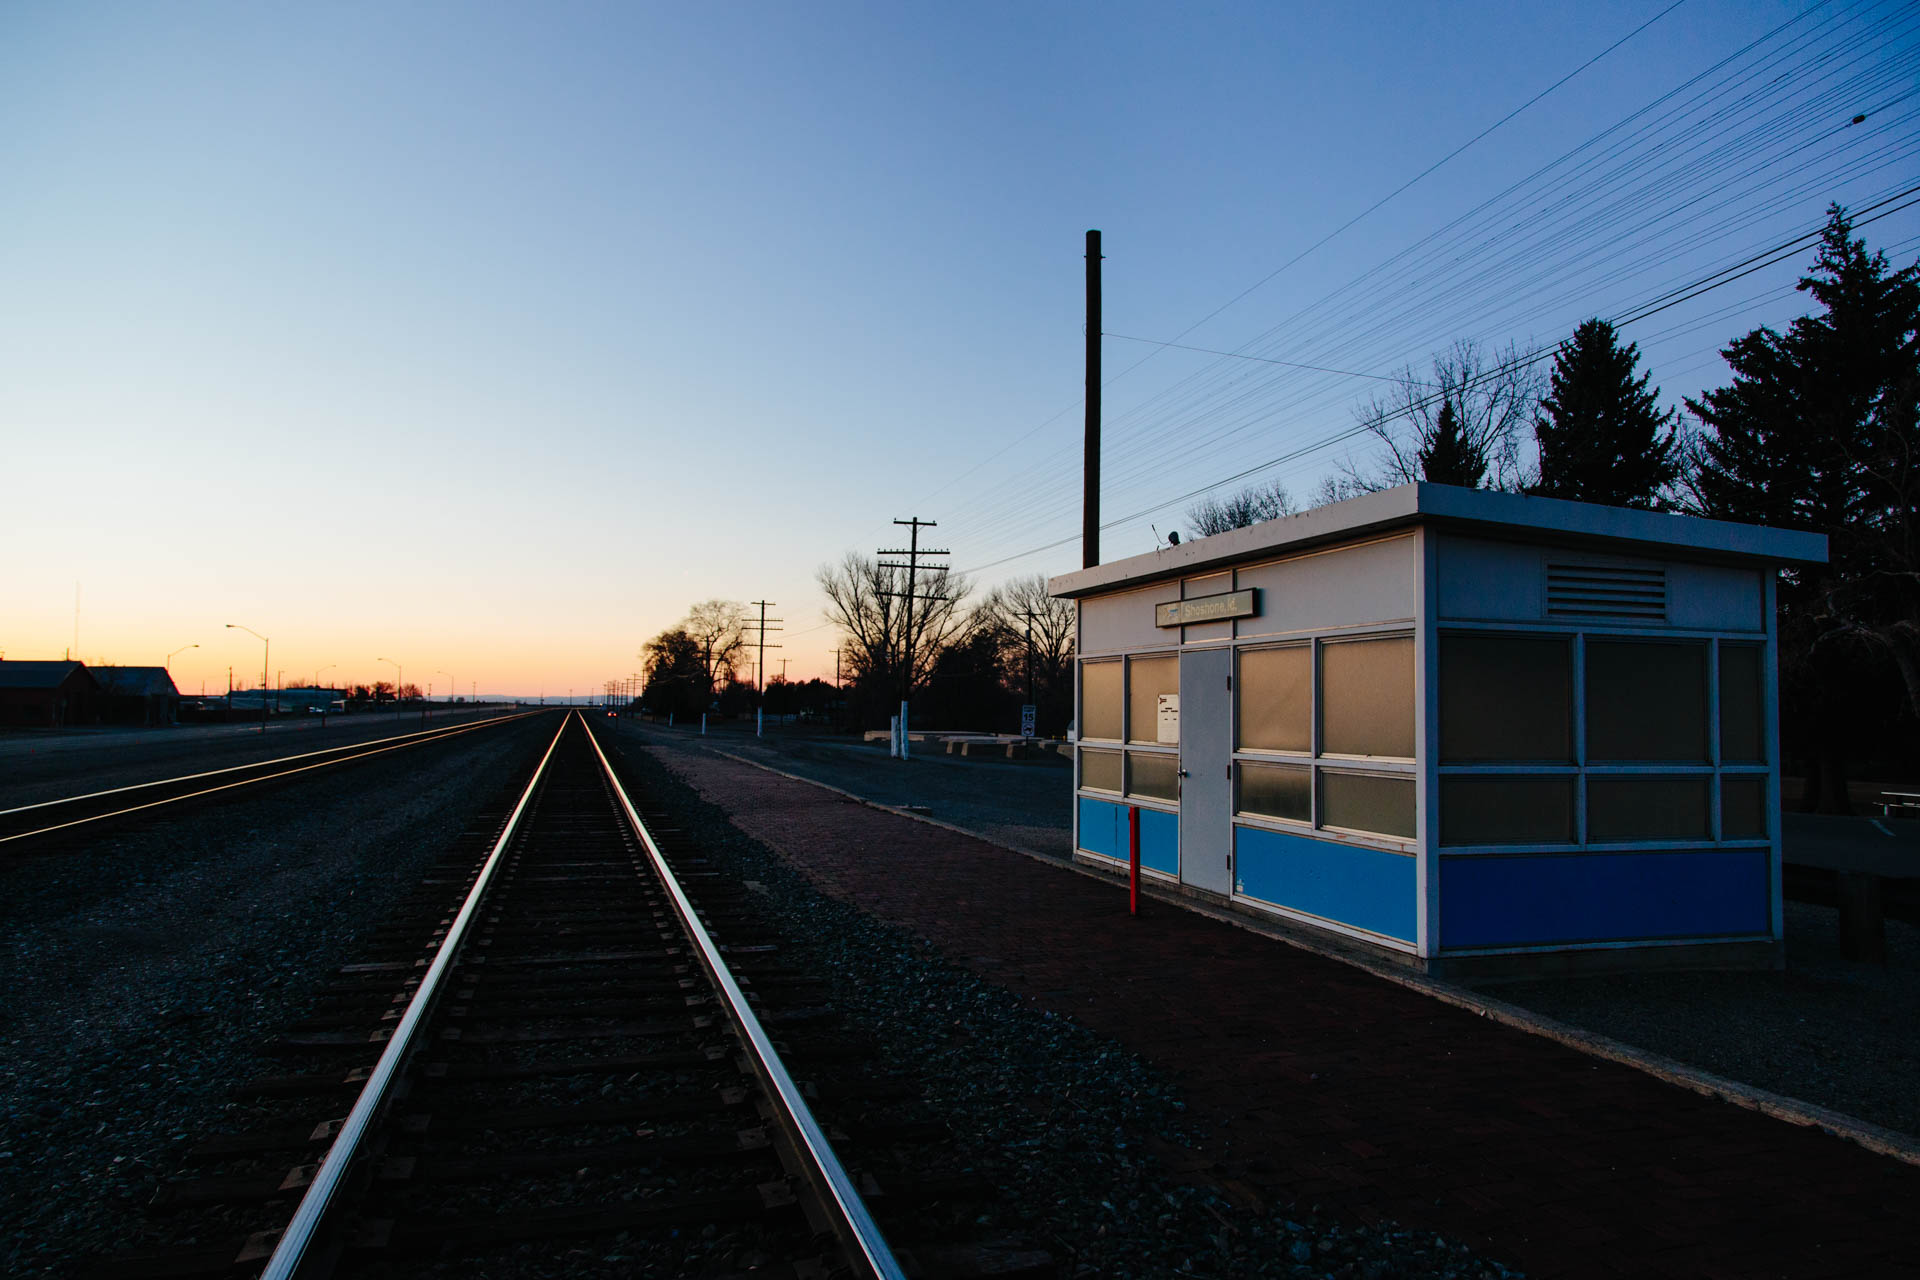 amtrak_shelter_sunset_shoshone_id